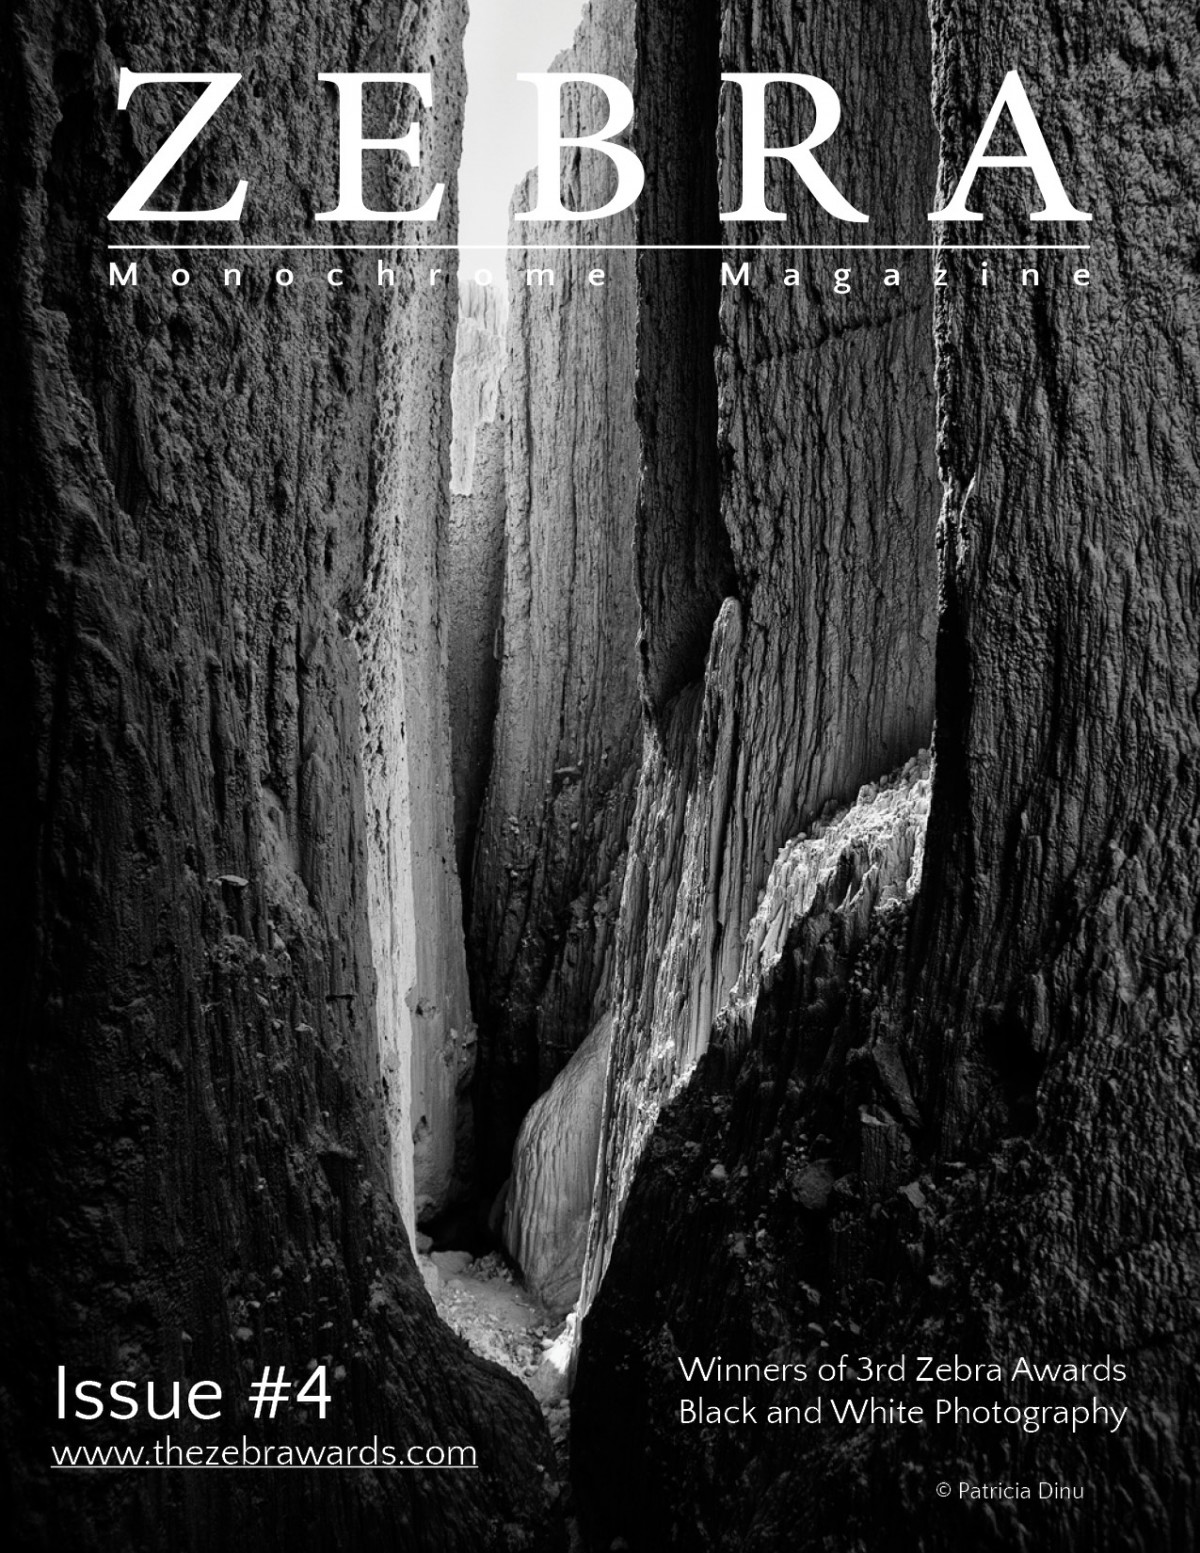 Zebra Magazine Issue 4 - 3rd Zebra Awards